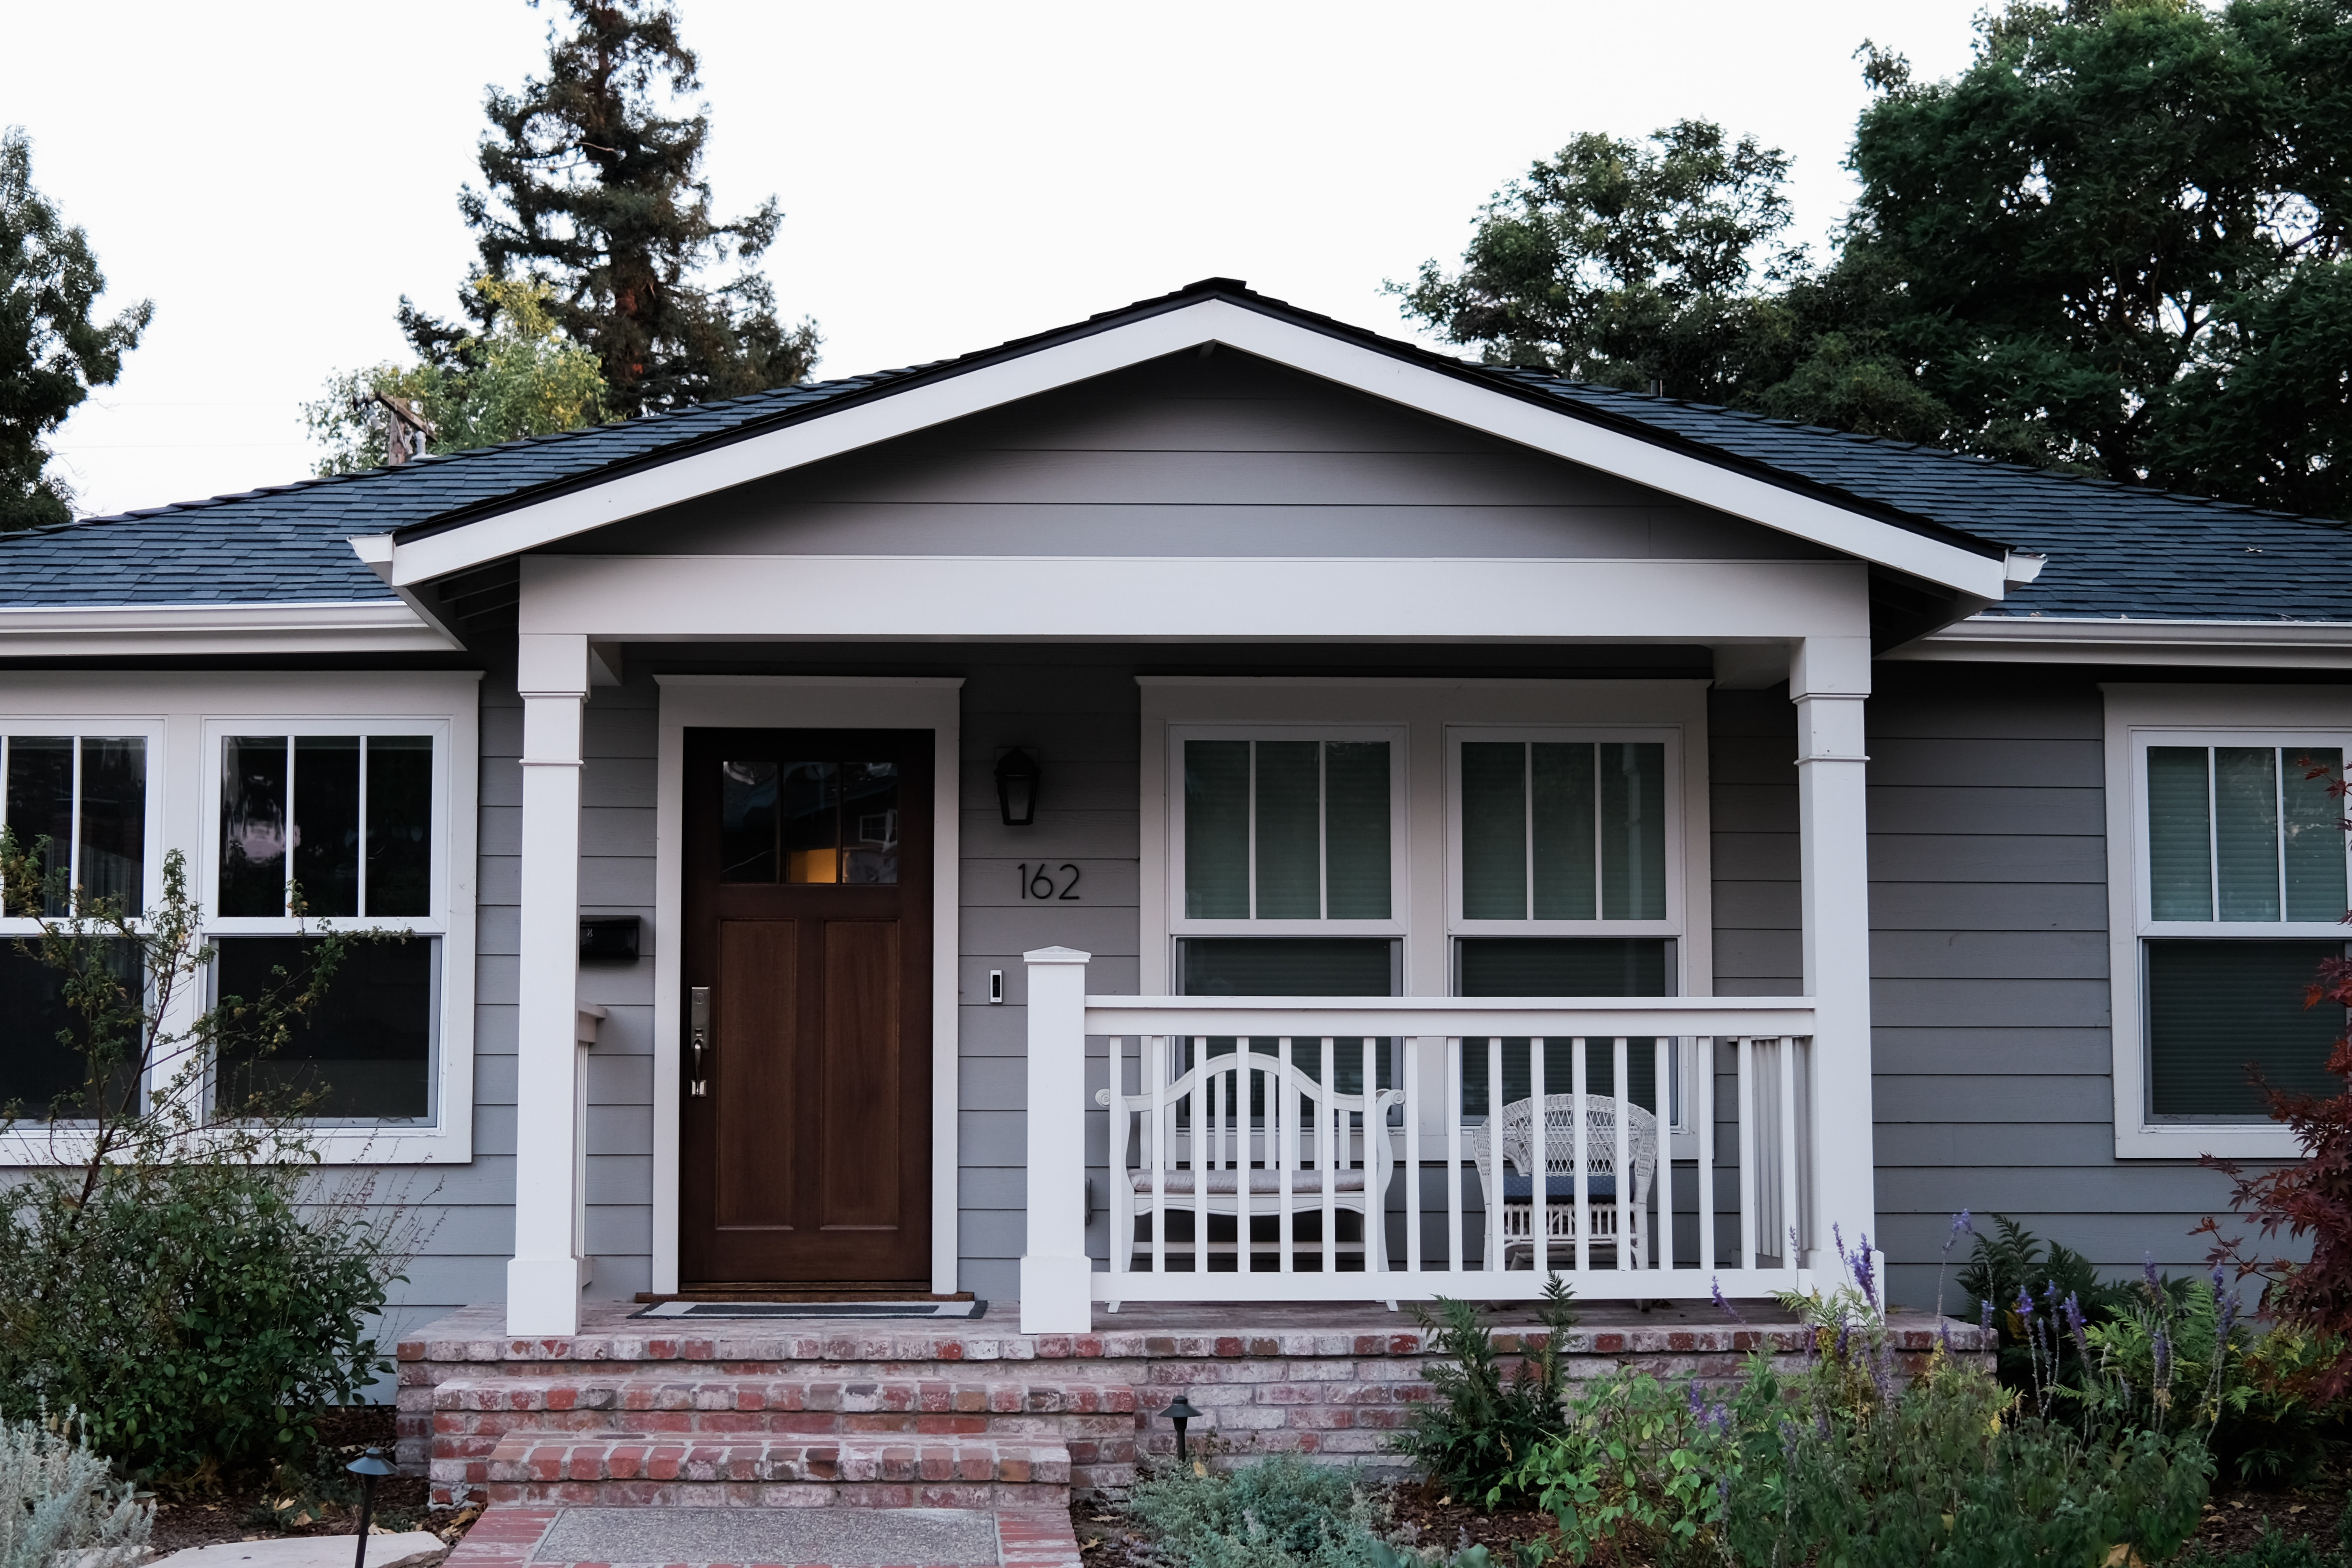 Granny flats and the definition of a dependent persons unit. What is a moveable building?